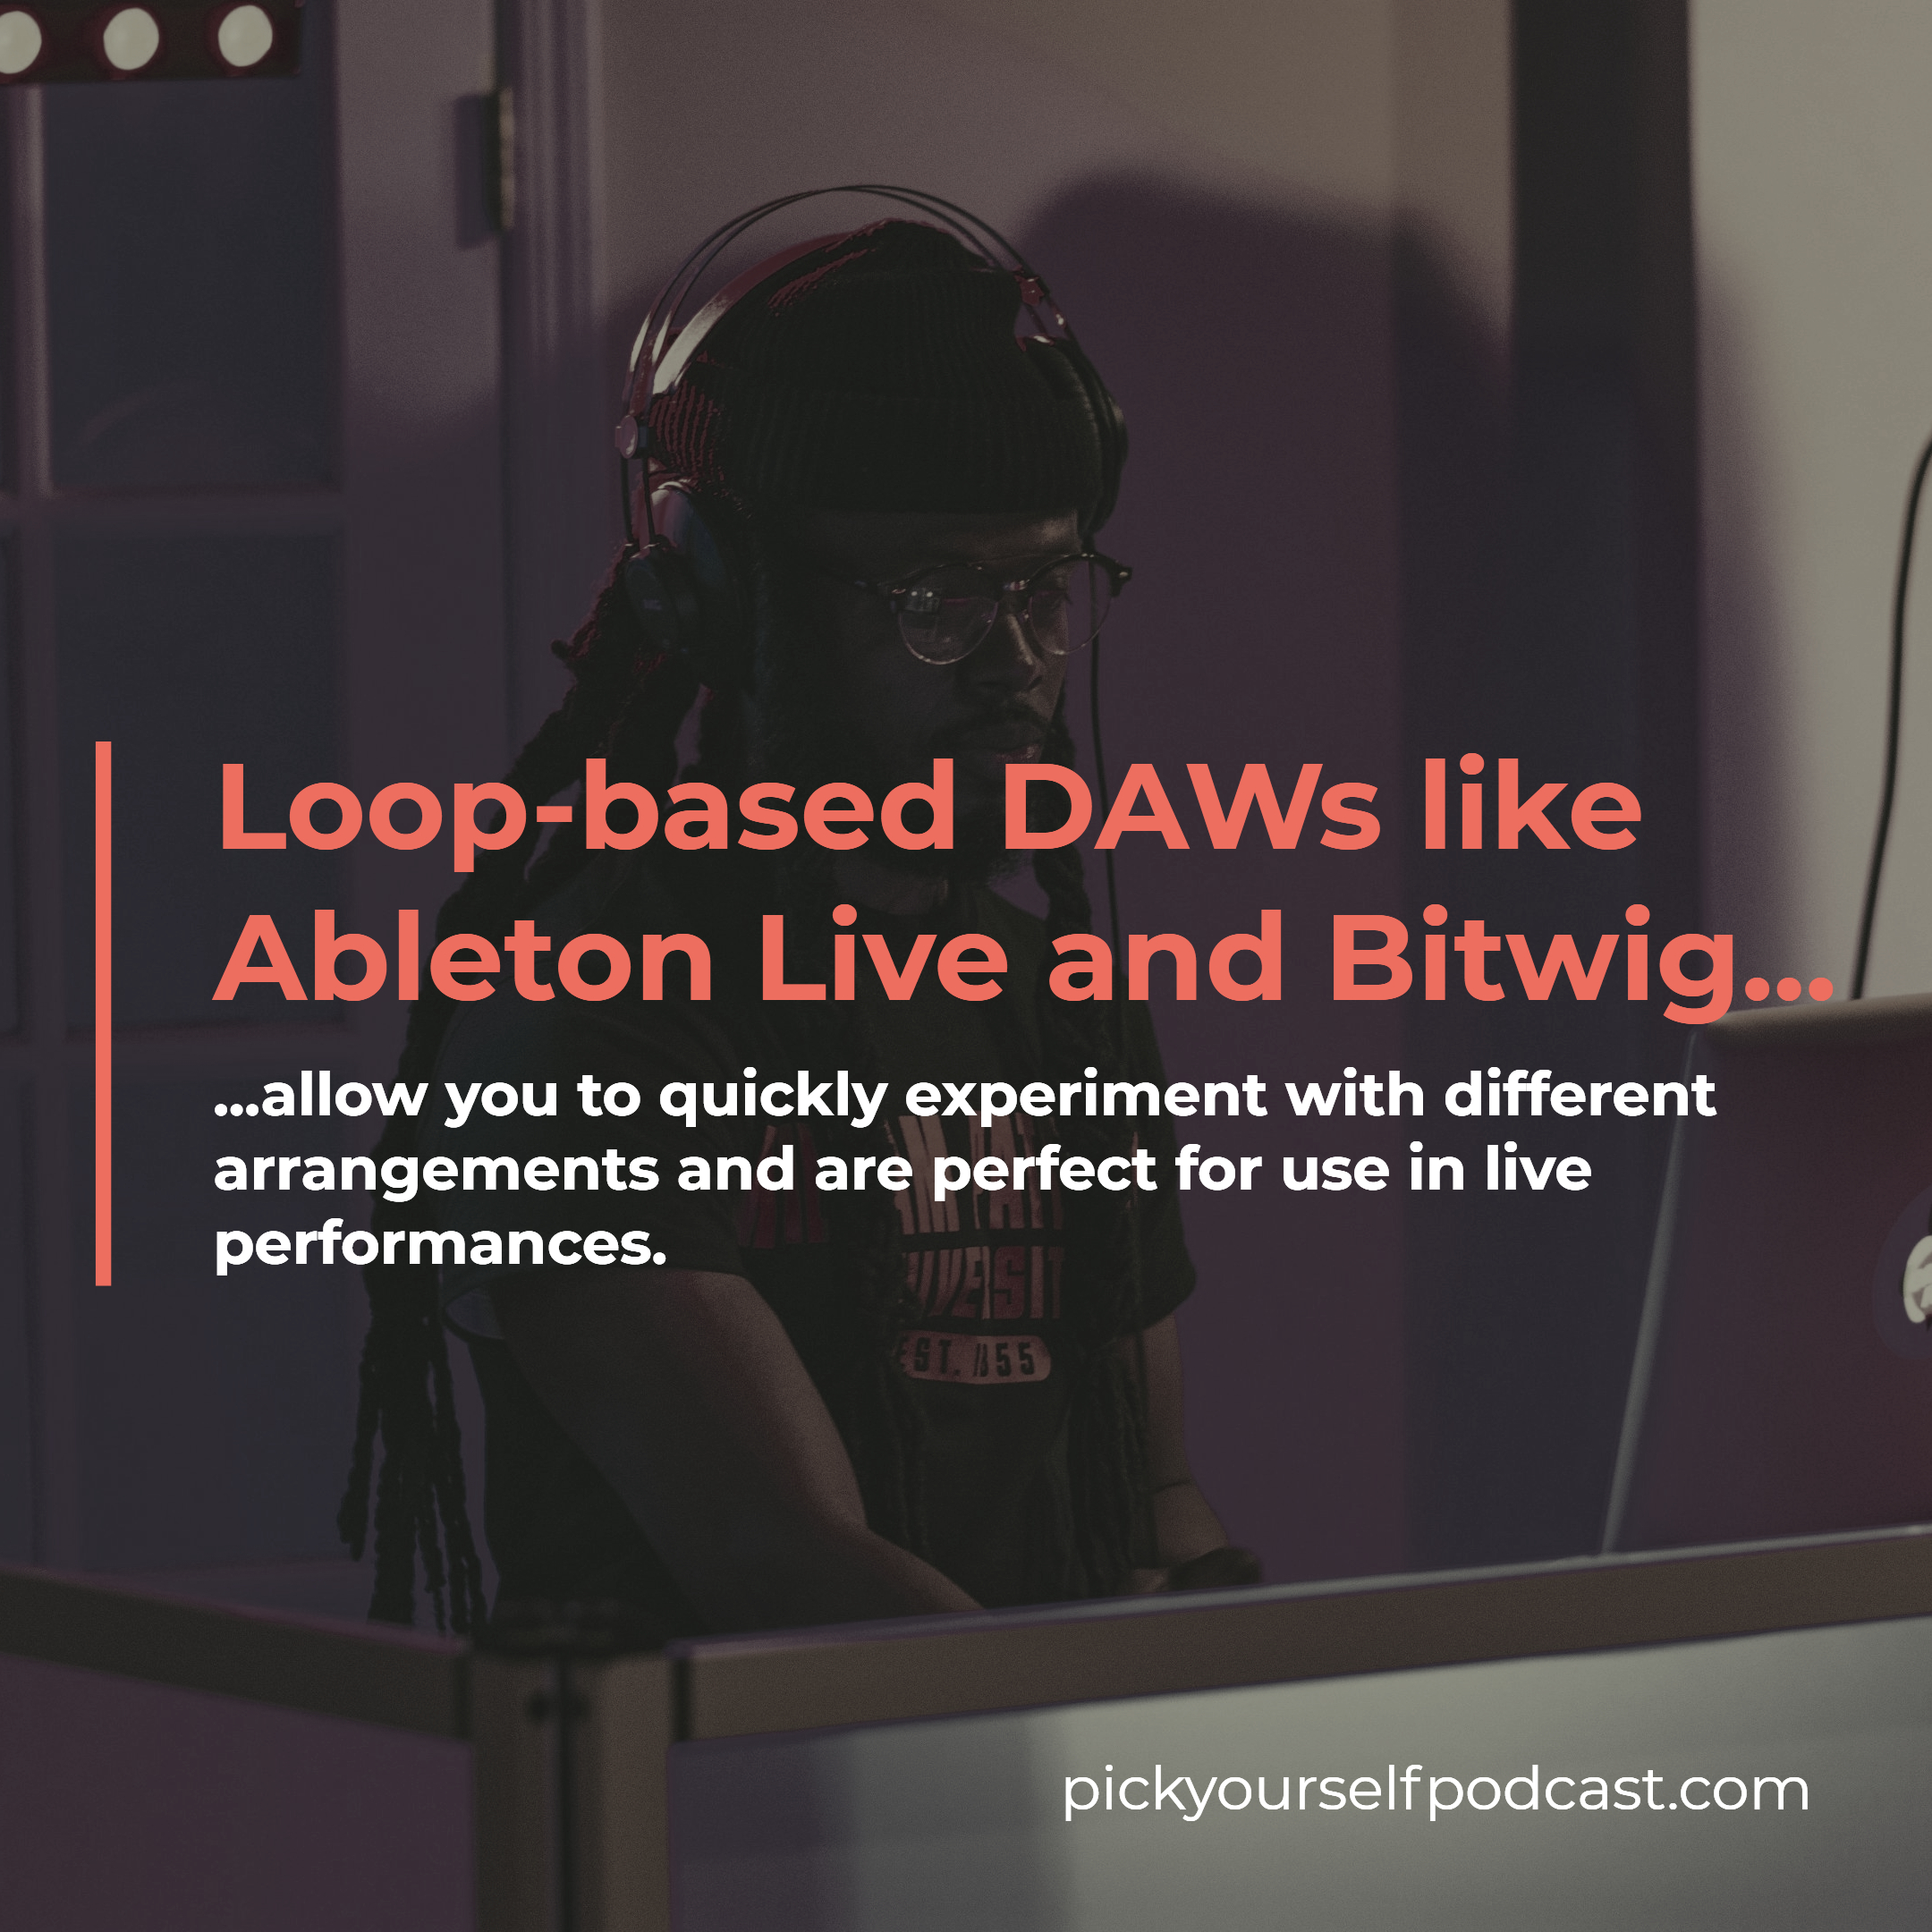 what is the best DAW for electronic music? Loop-based DAWs like Ableton and Bitwig allow you to quickly arrange in different ways.